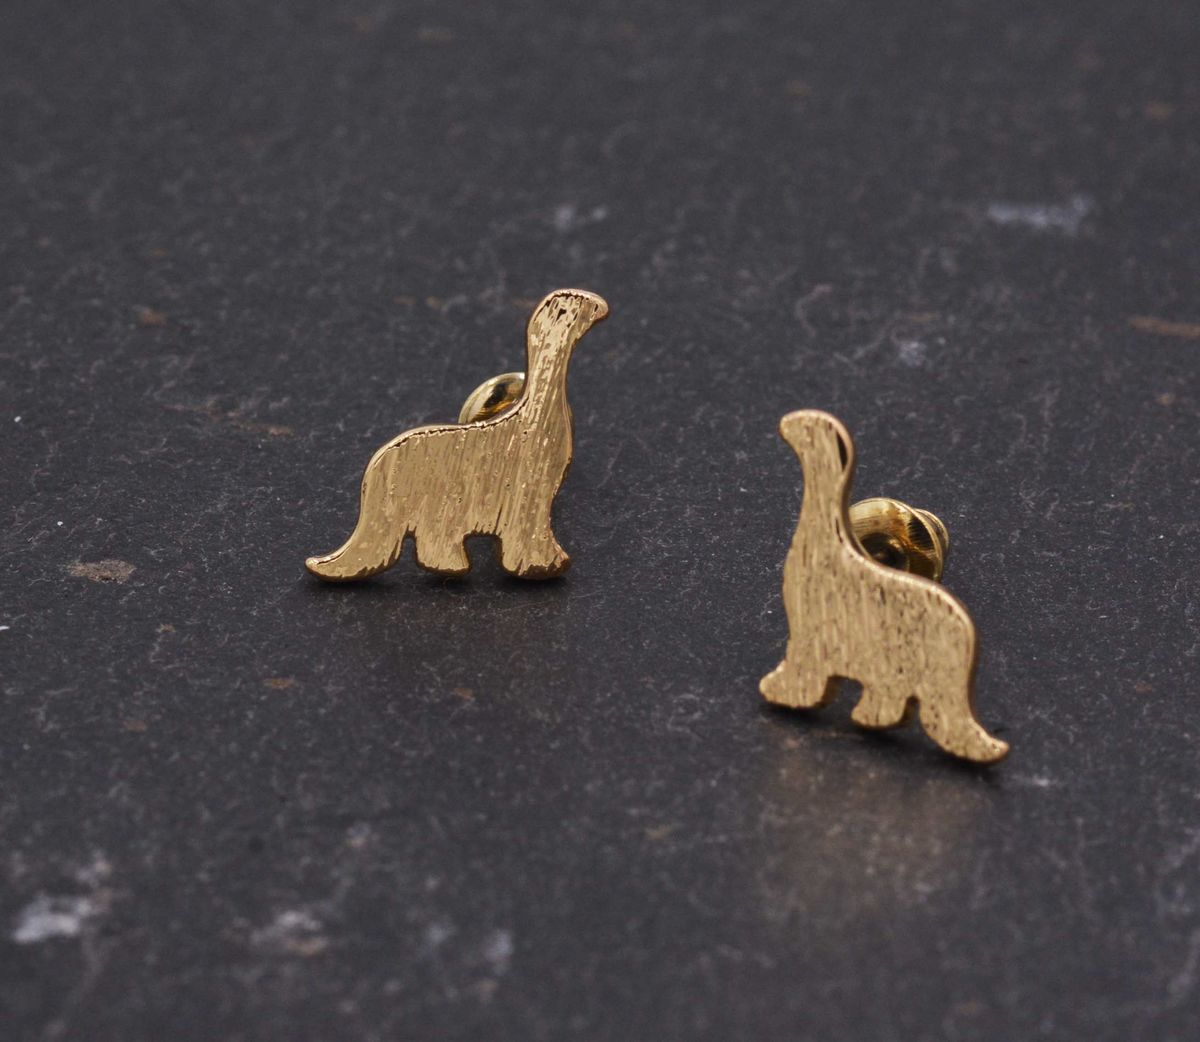 Gold Plated Little Apatosaurus Dinosaur Stud Earrings - Cute,  Fun and Quirky Jewellery - In Organza Bag.  - product images  of